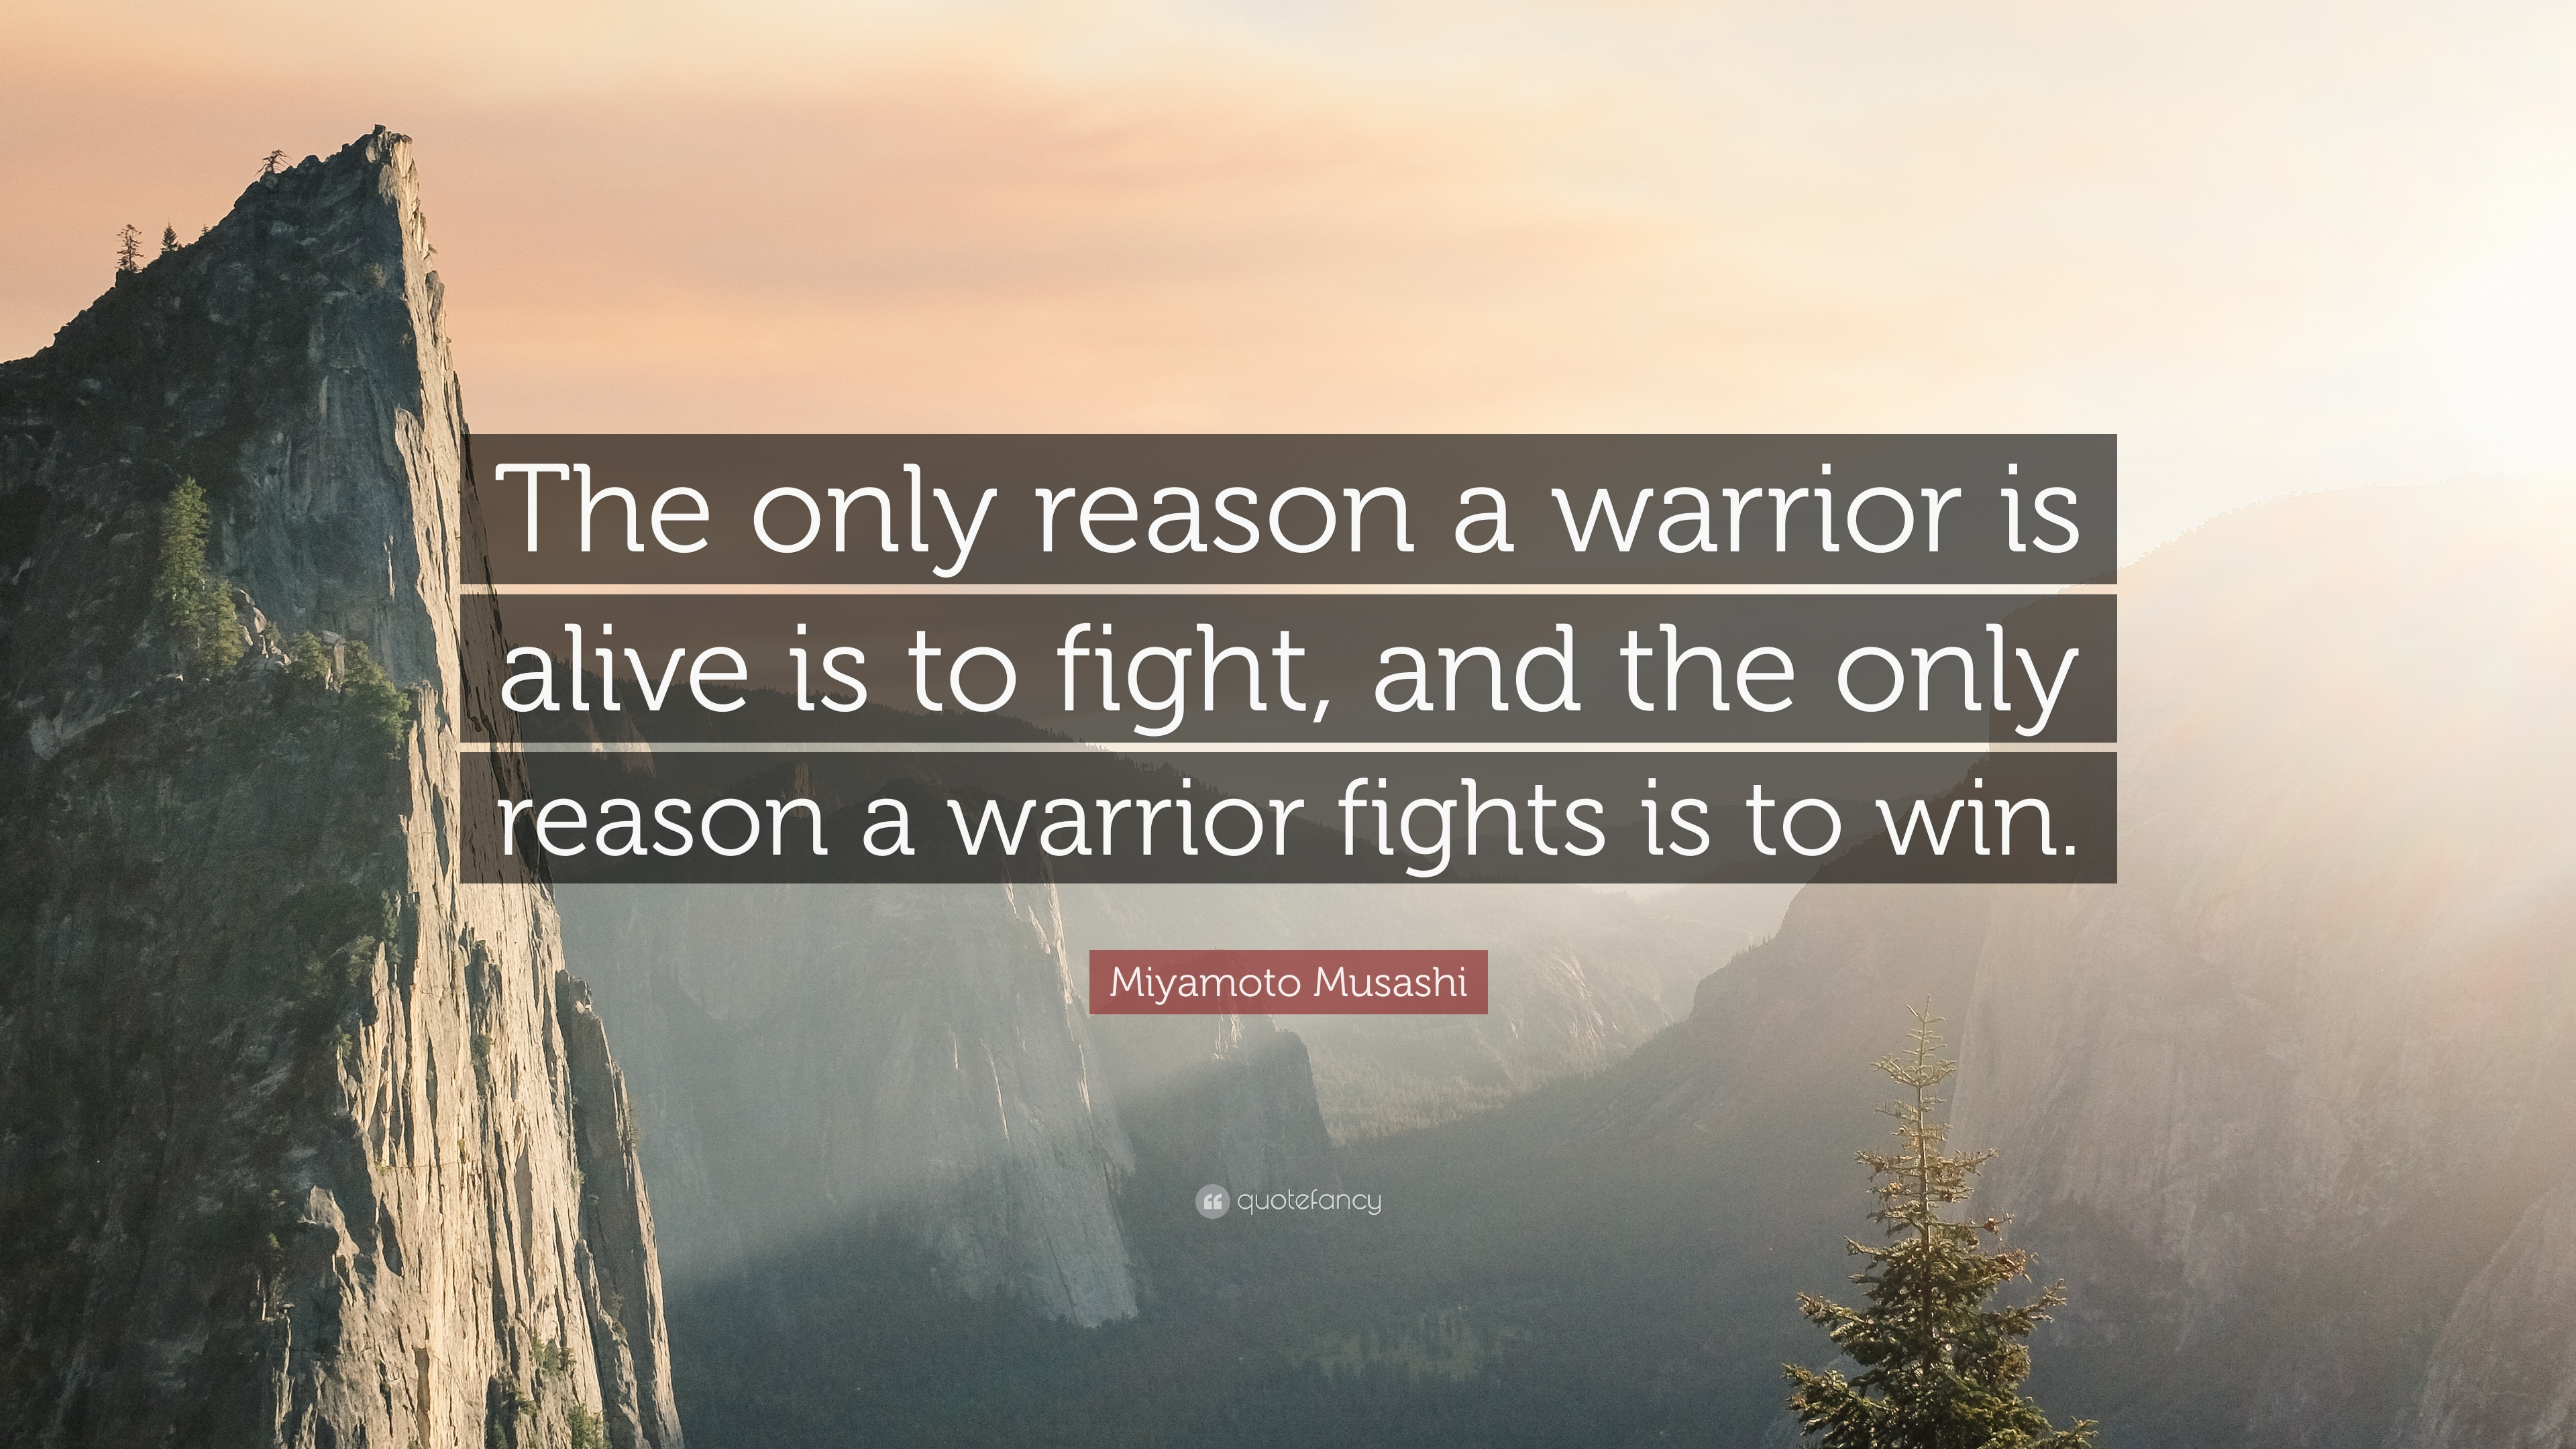 Quotes Text Fighting: Winning Quotes (40 Wallpapers)